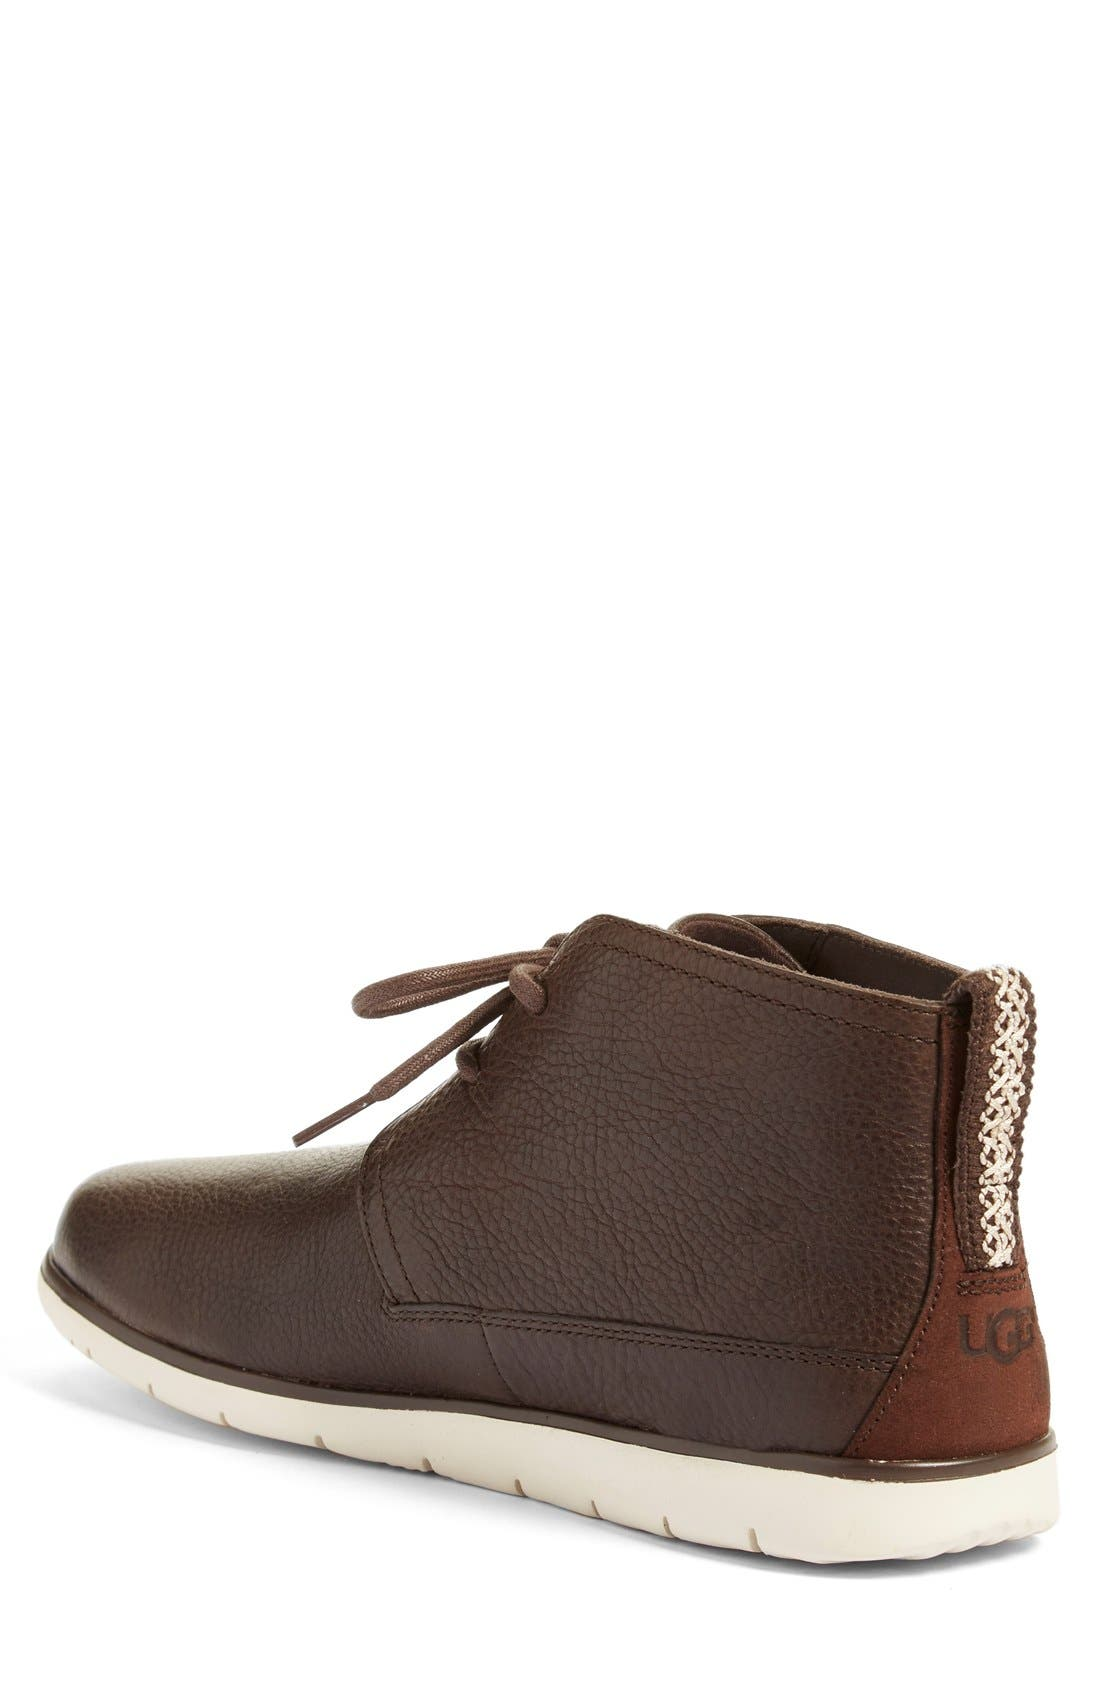 Freamon Chukka Boot,                             Alternate thumbnail 9, color,